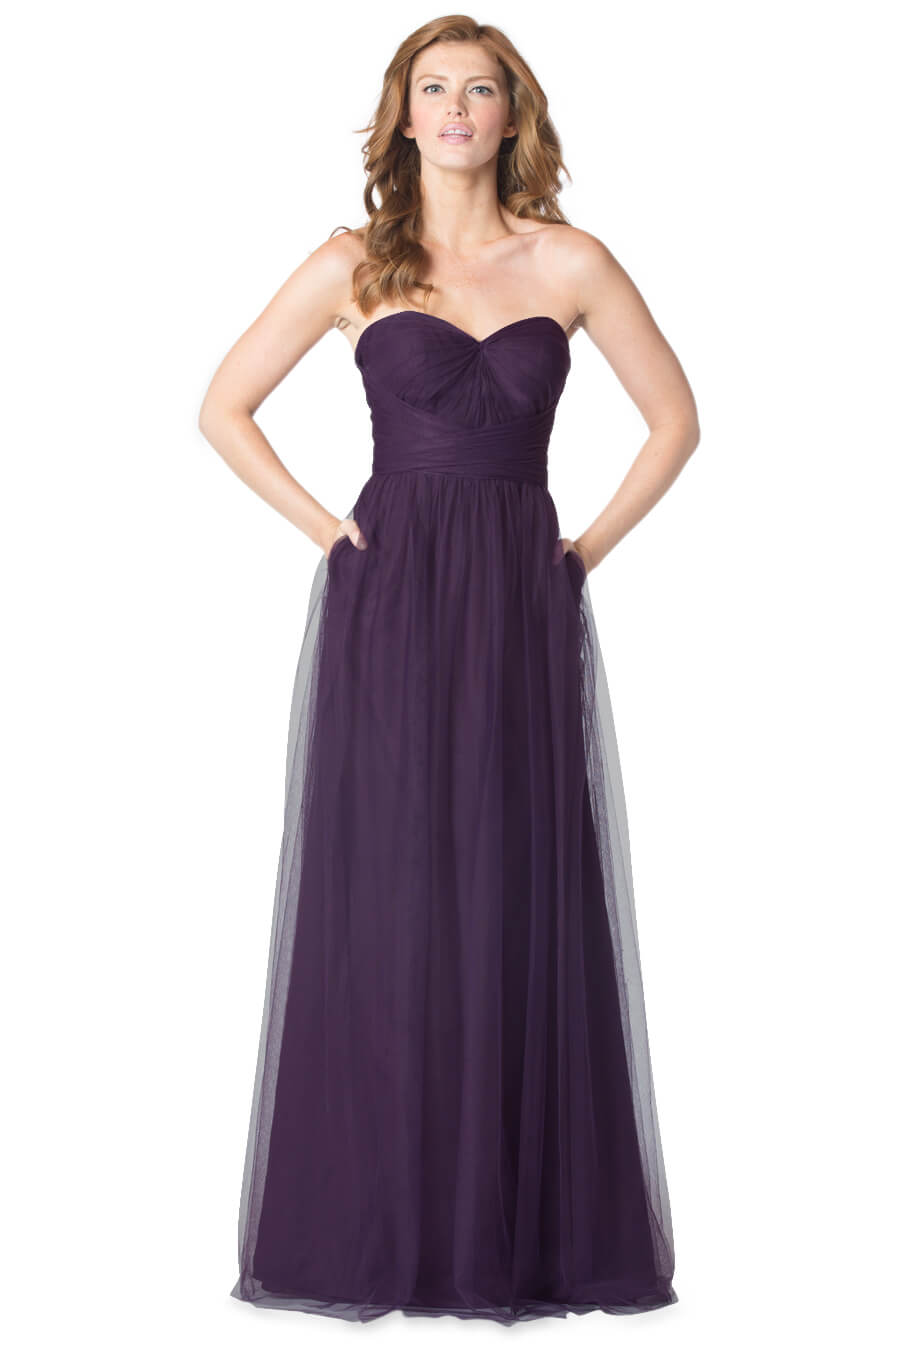 STYLE: 1627 (available short 1627-s) | Bridesmaid Dresses, Evening ...